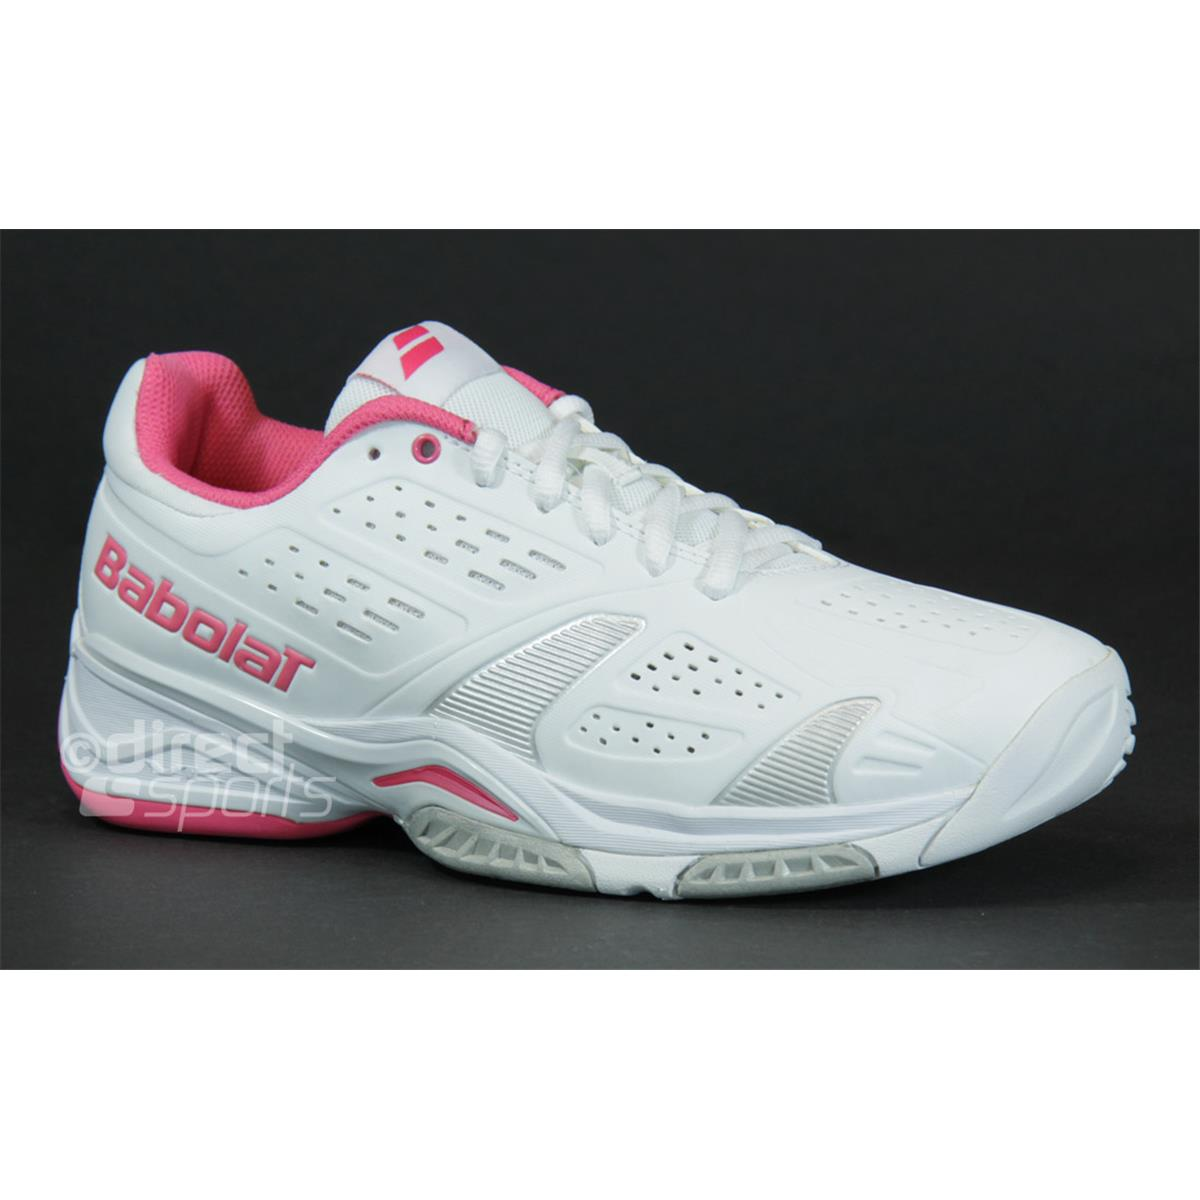 babolat sfx team all court womens tennis shoes white pink